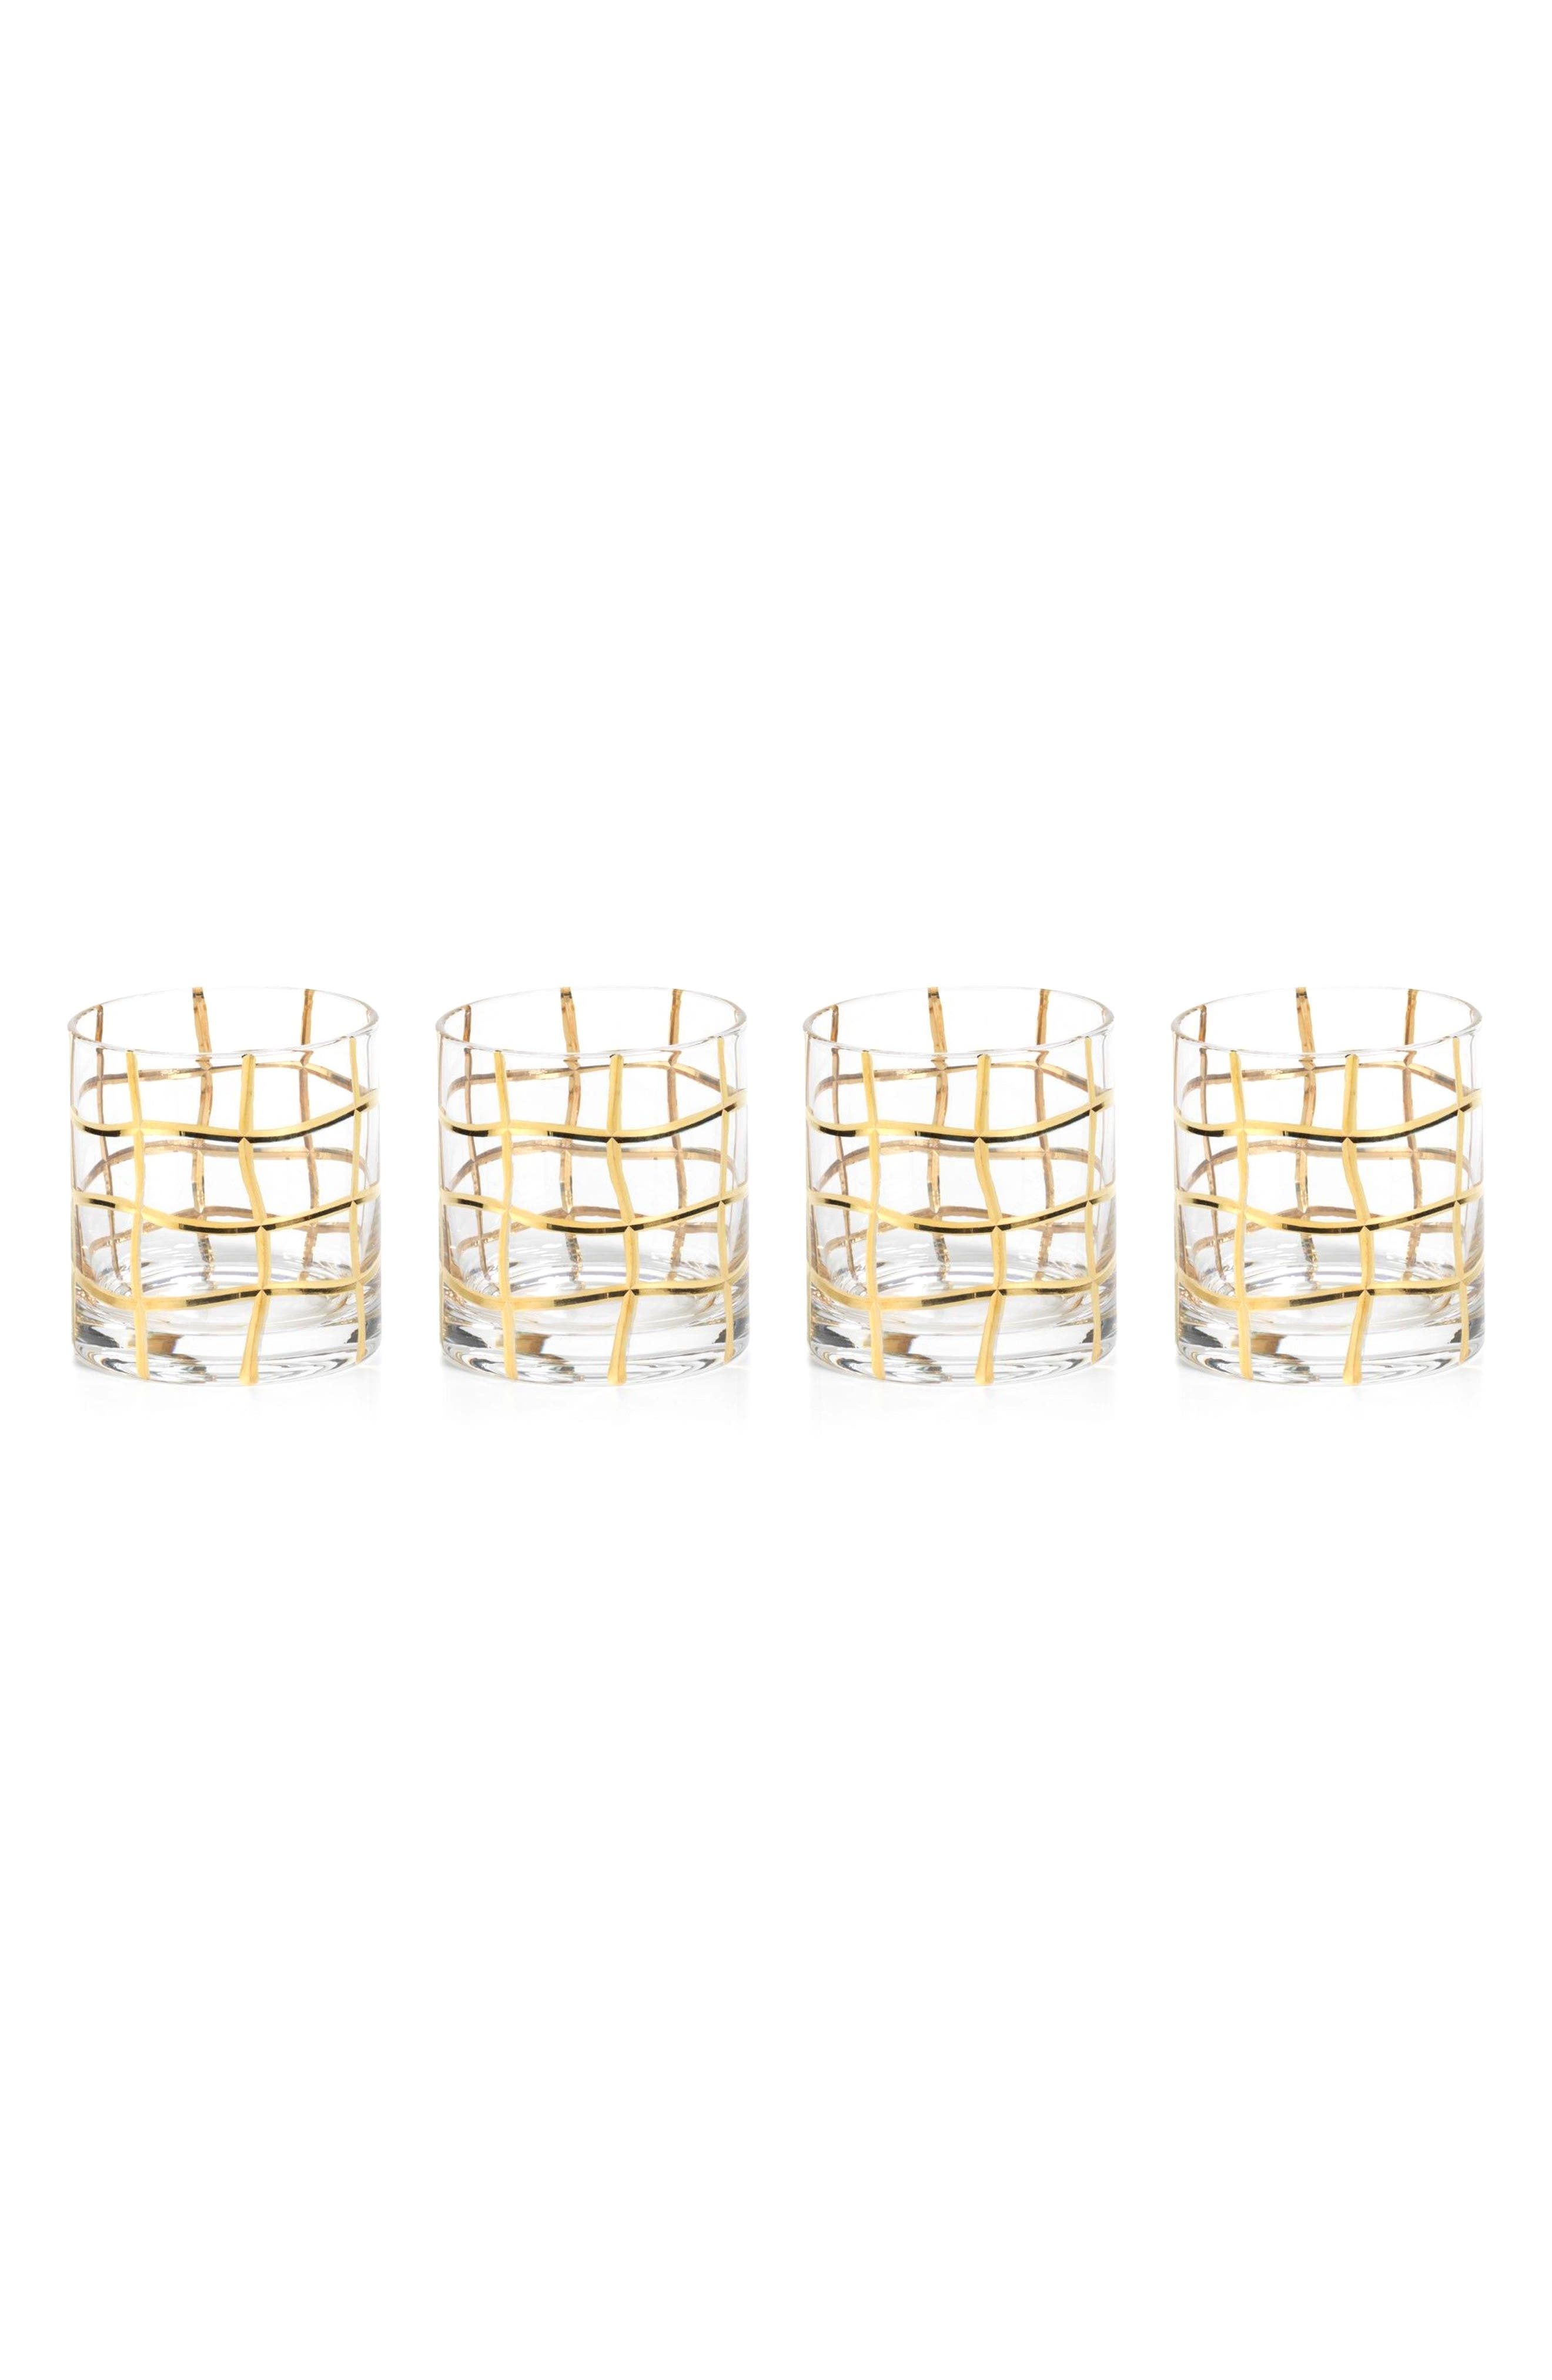 Groove Set of 4 Double Old Fashioned Glasses,                             Main thumbnail 1, color,                             710